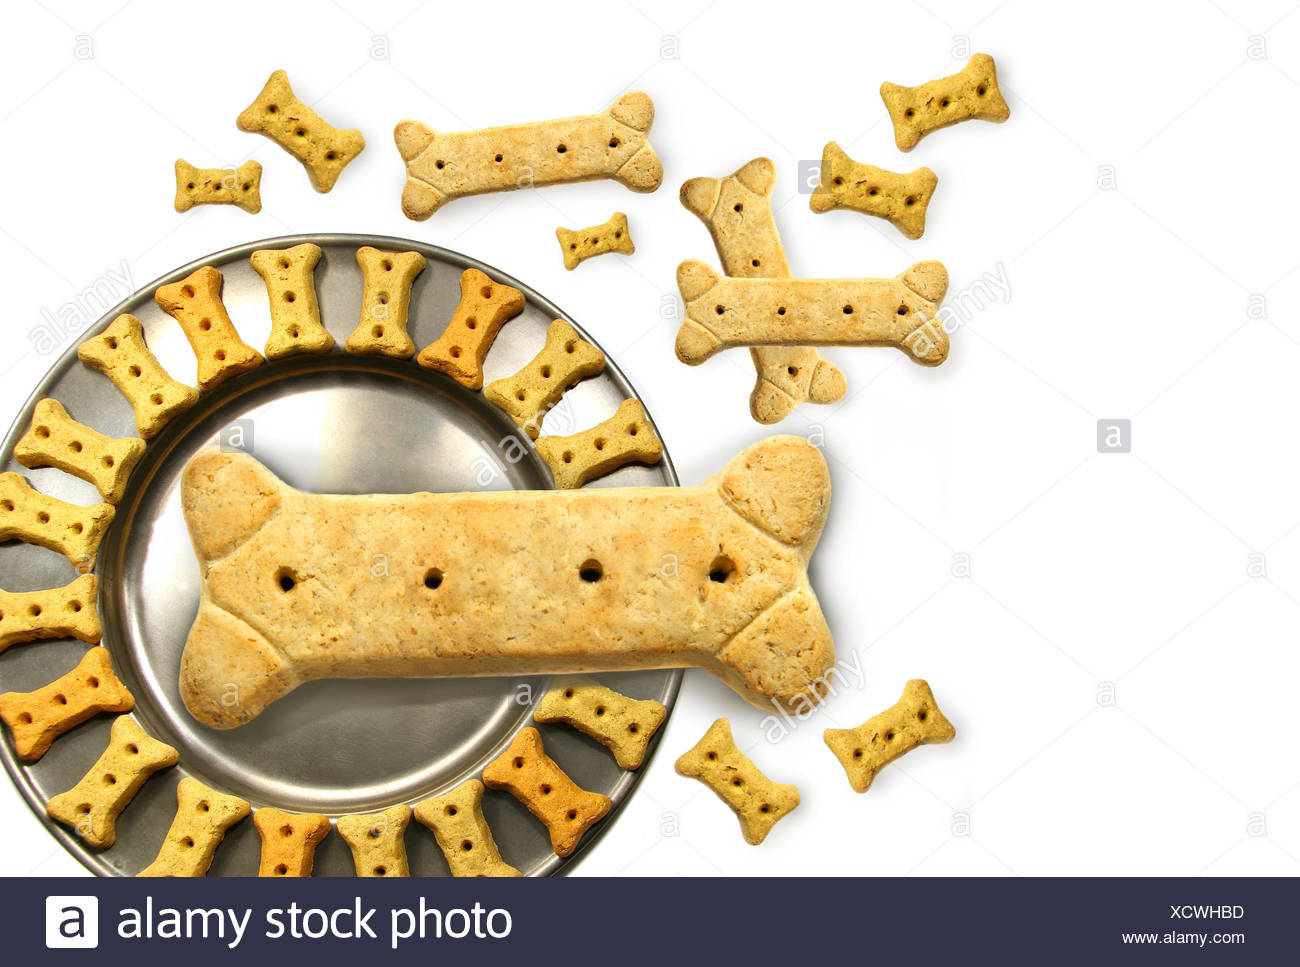 Pile of doggy biskets with pewter dish - Stock Image